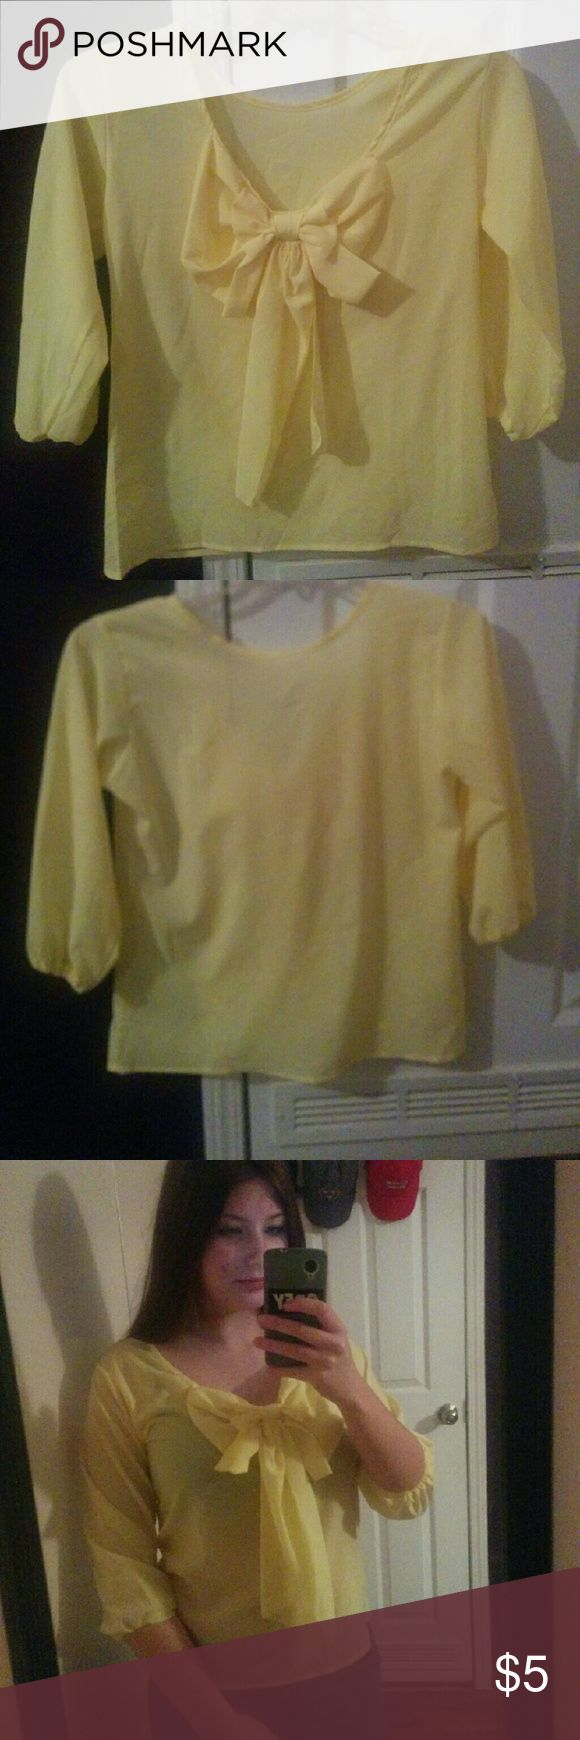 Yellow Blouse On Pinterest 60